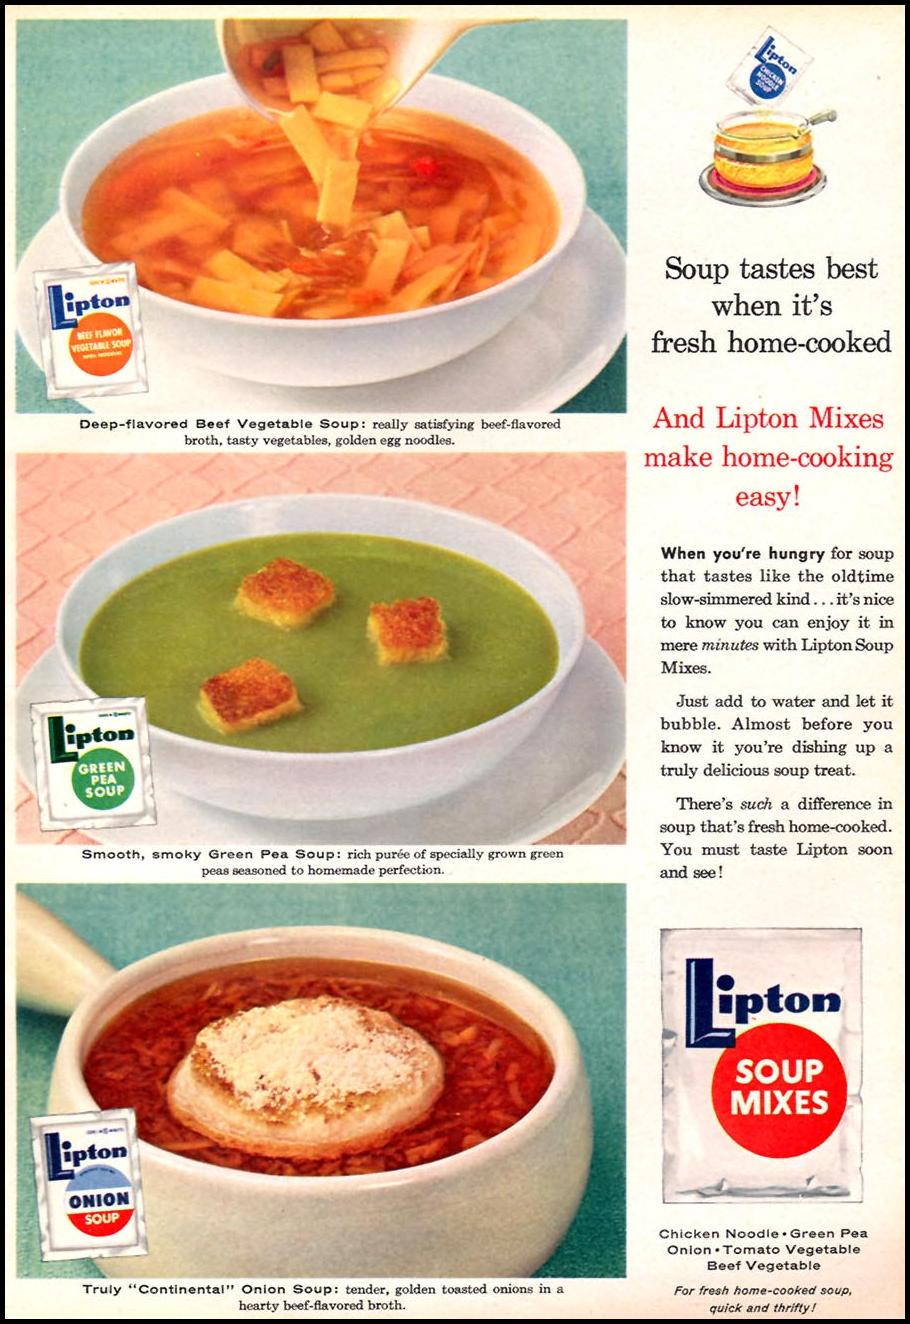 LIPTON SOUP MIXES FAMILY CIRCLE 02/01/1957 p. 51